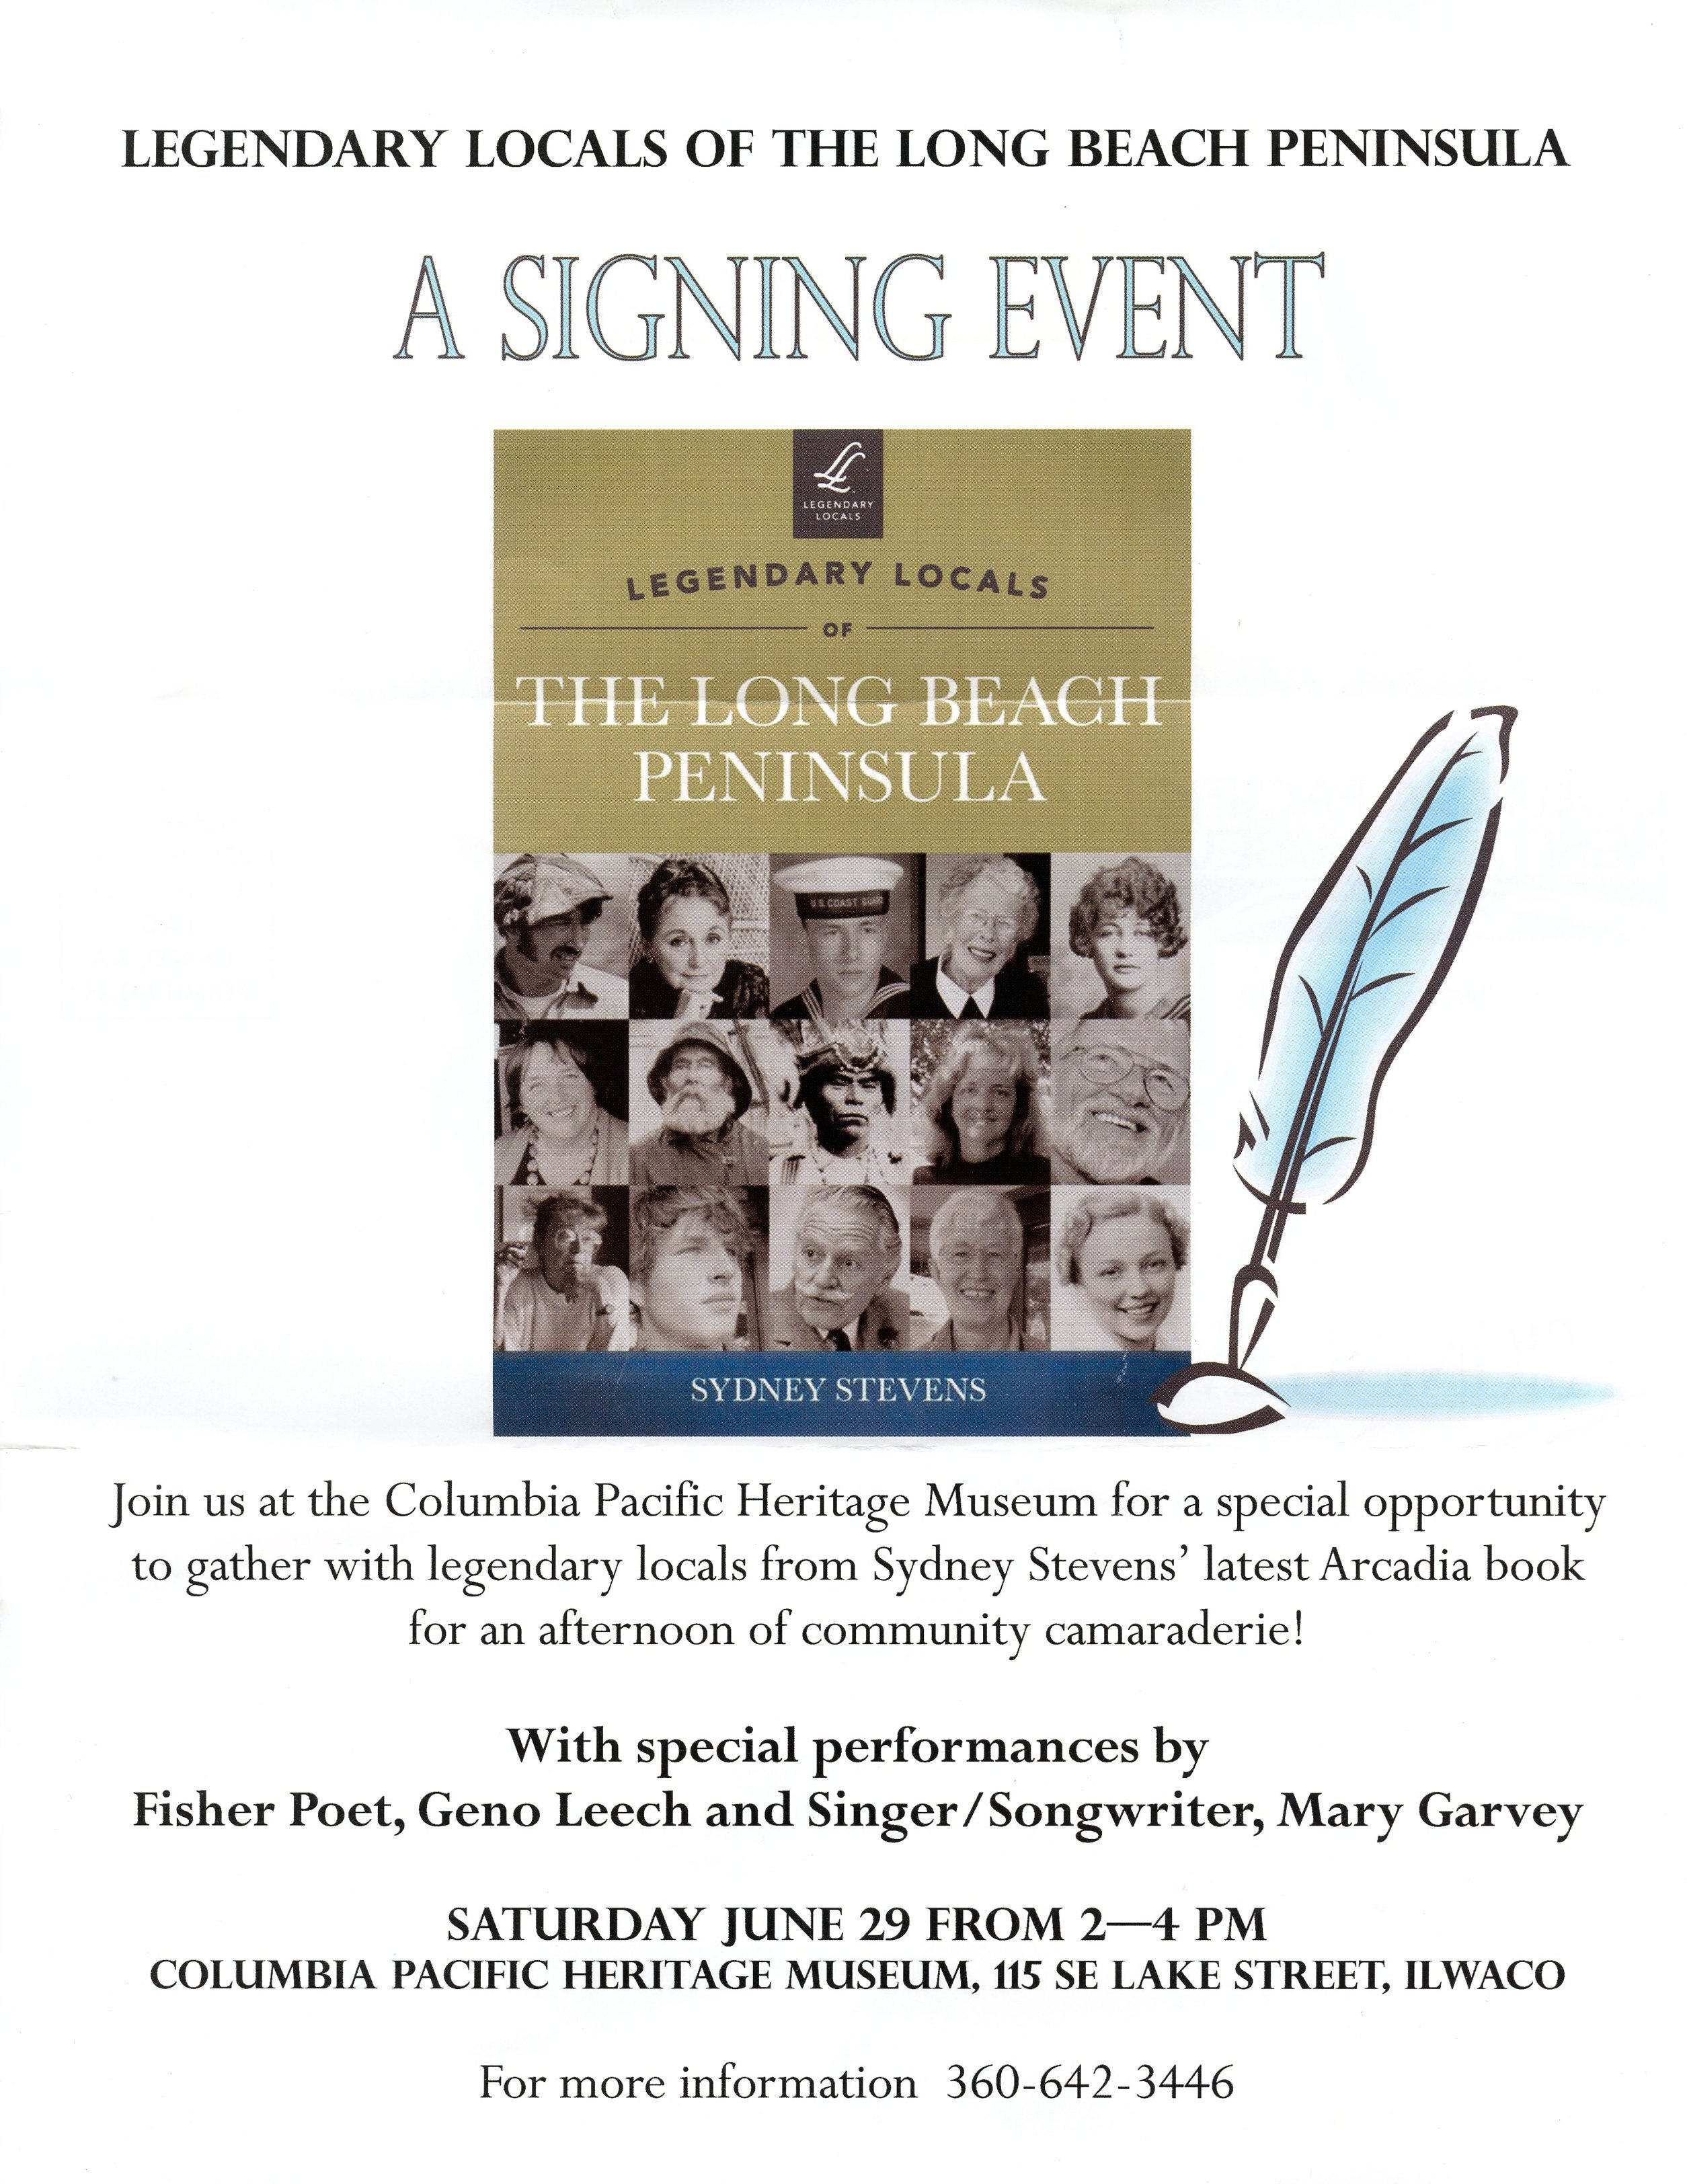 A Signing Event